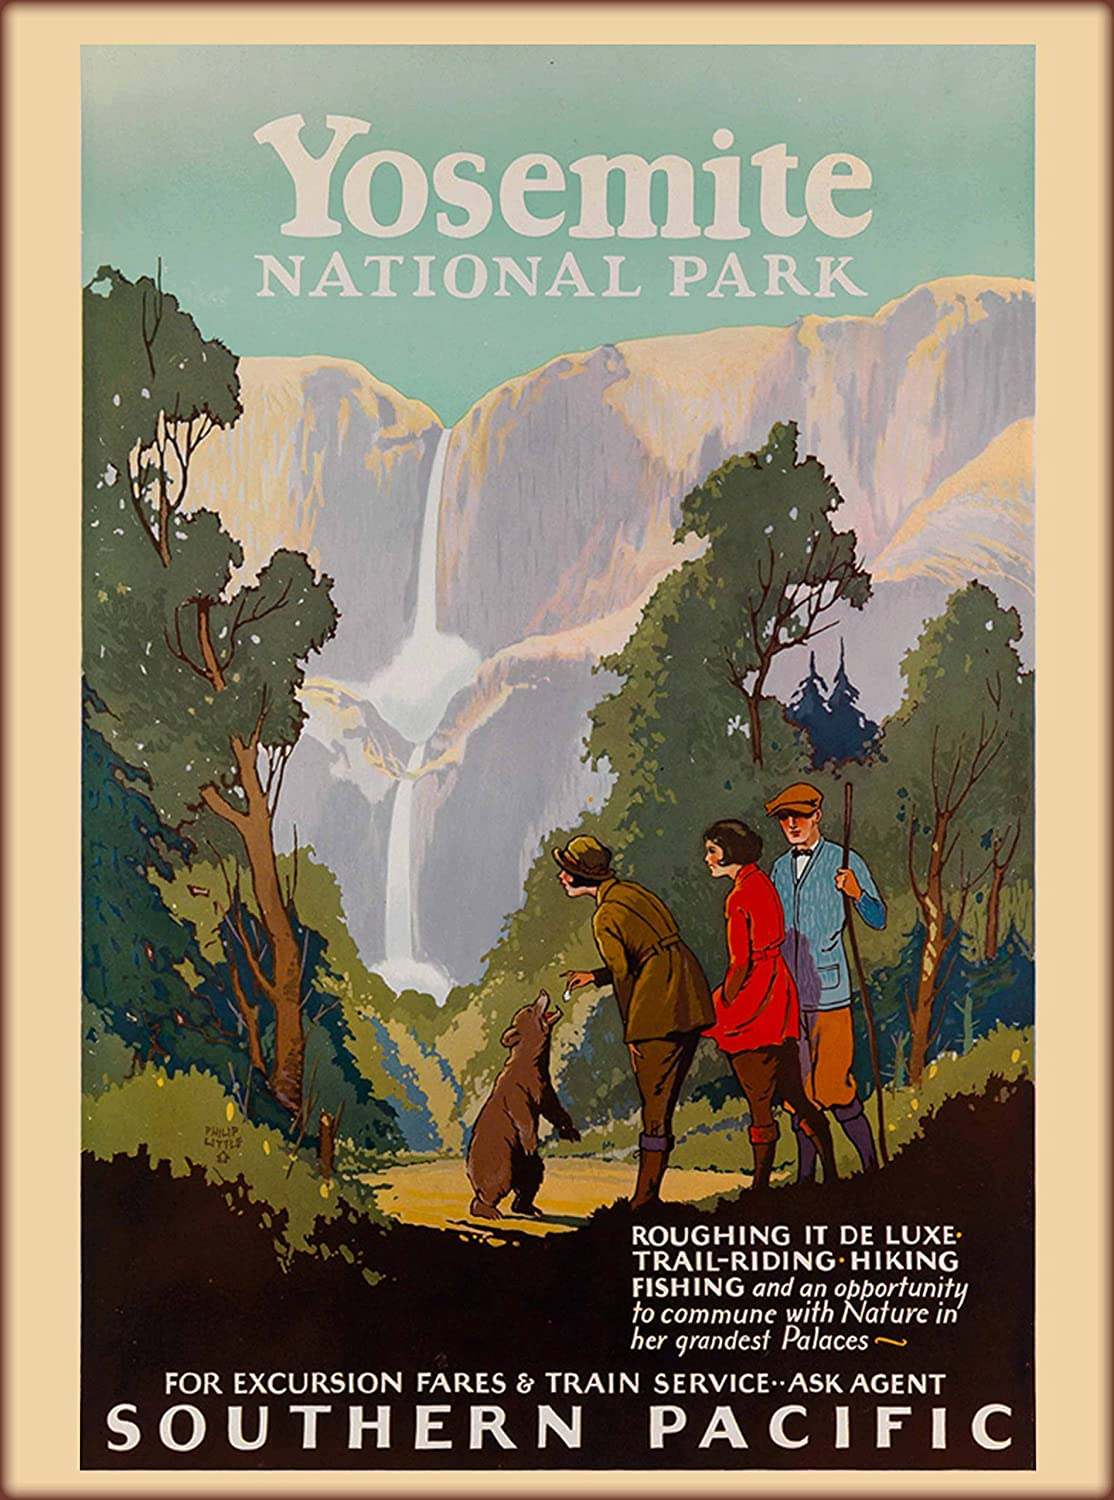 A SLICE IN TIME Yosemite National Park California Southern Pacific Lines Railroad Vintage United States U.S. Advertisement Travel Poster. Poster Measures 10 x 13.5 inches.